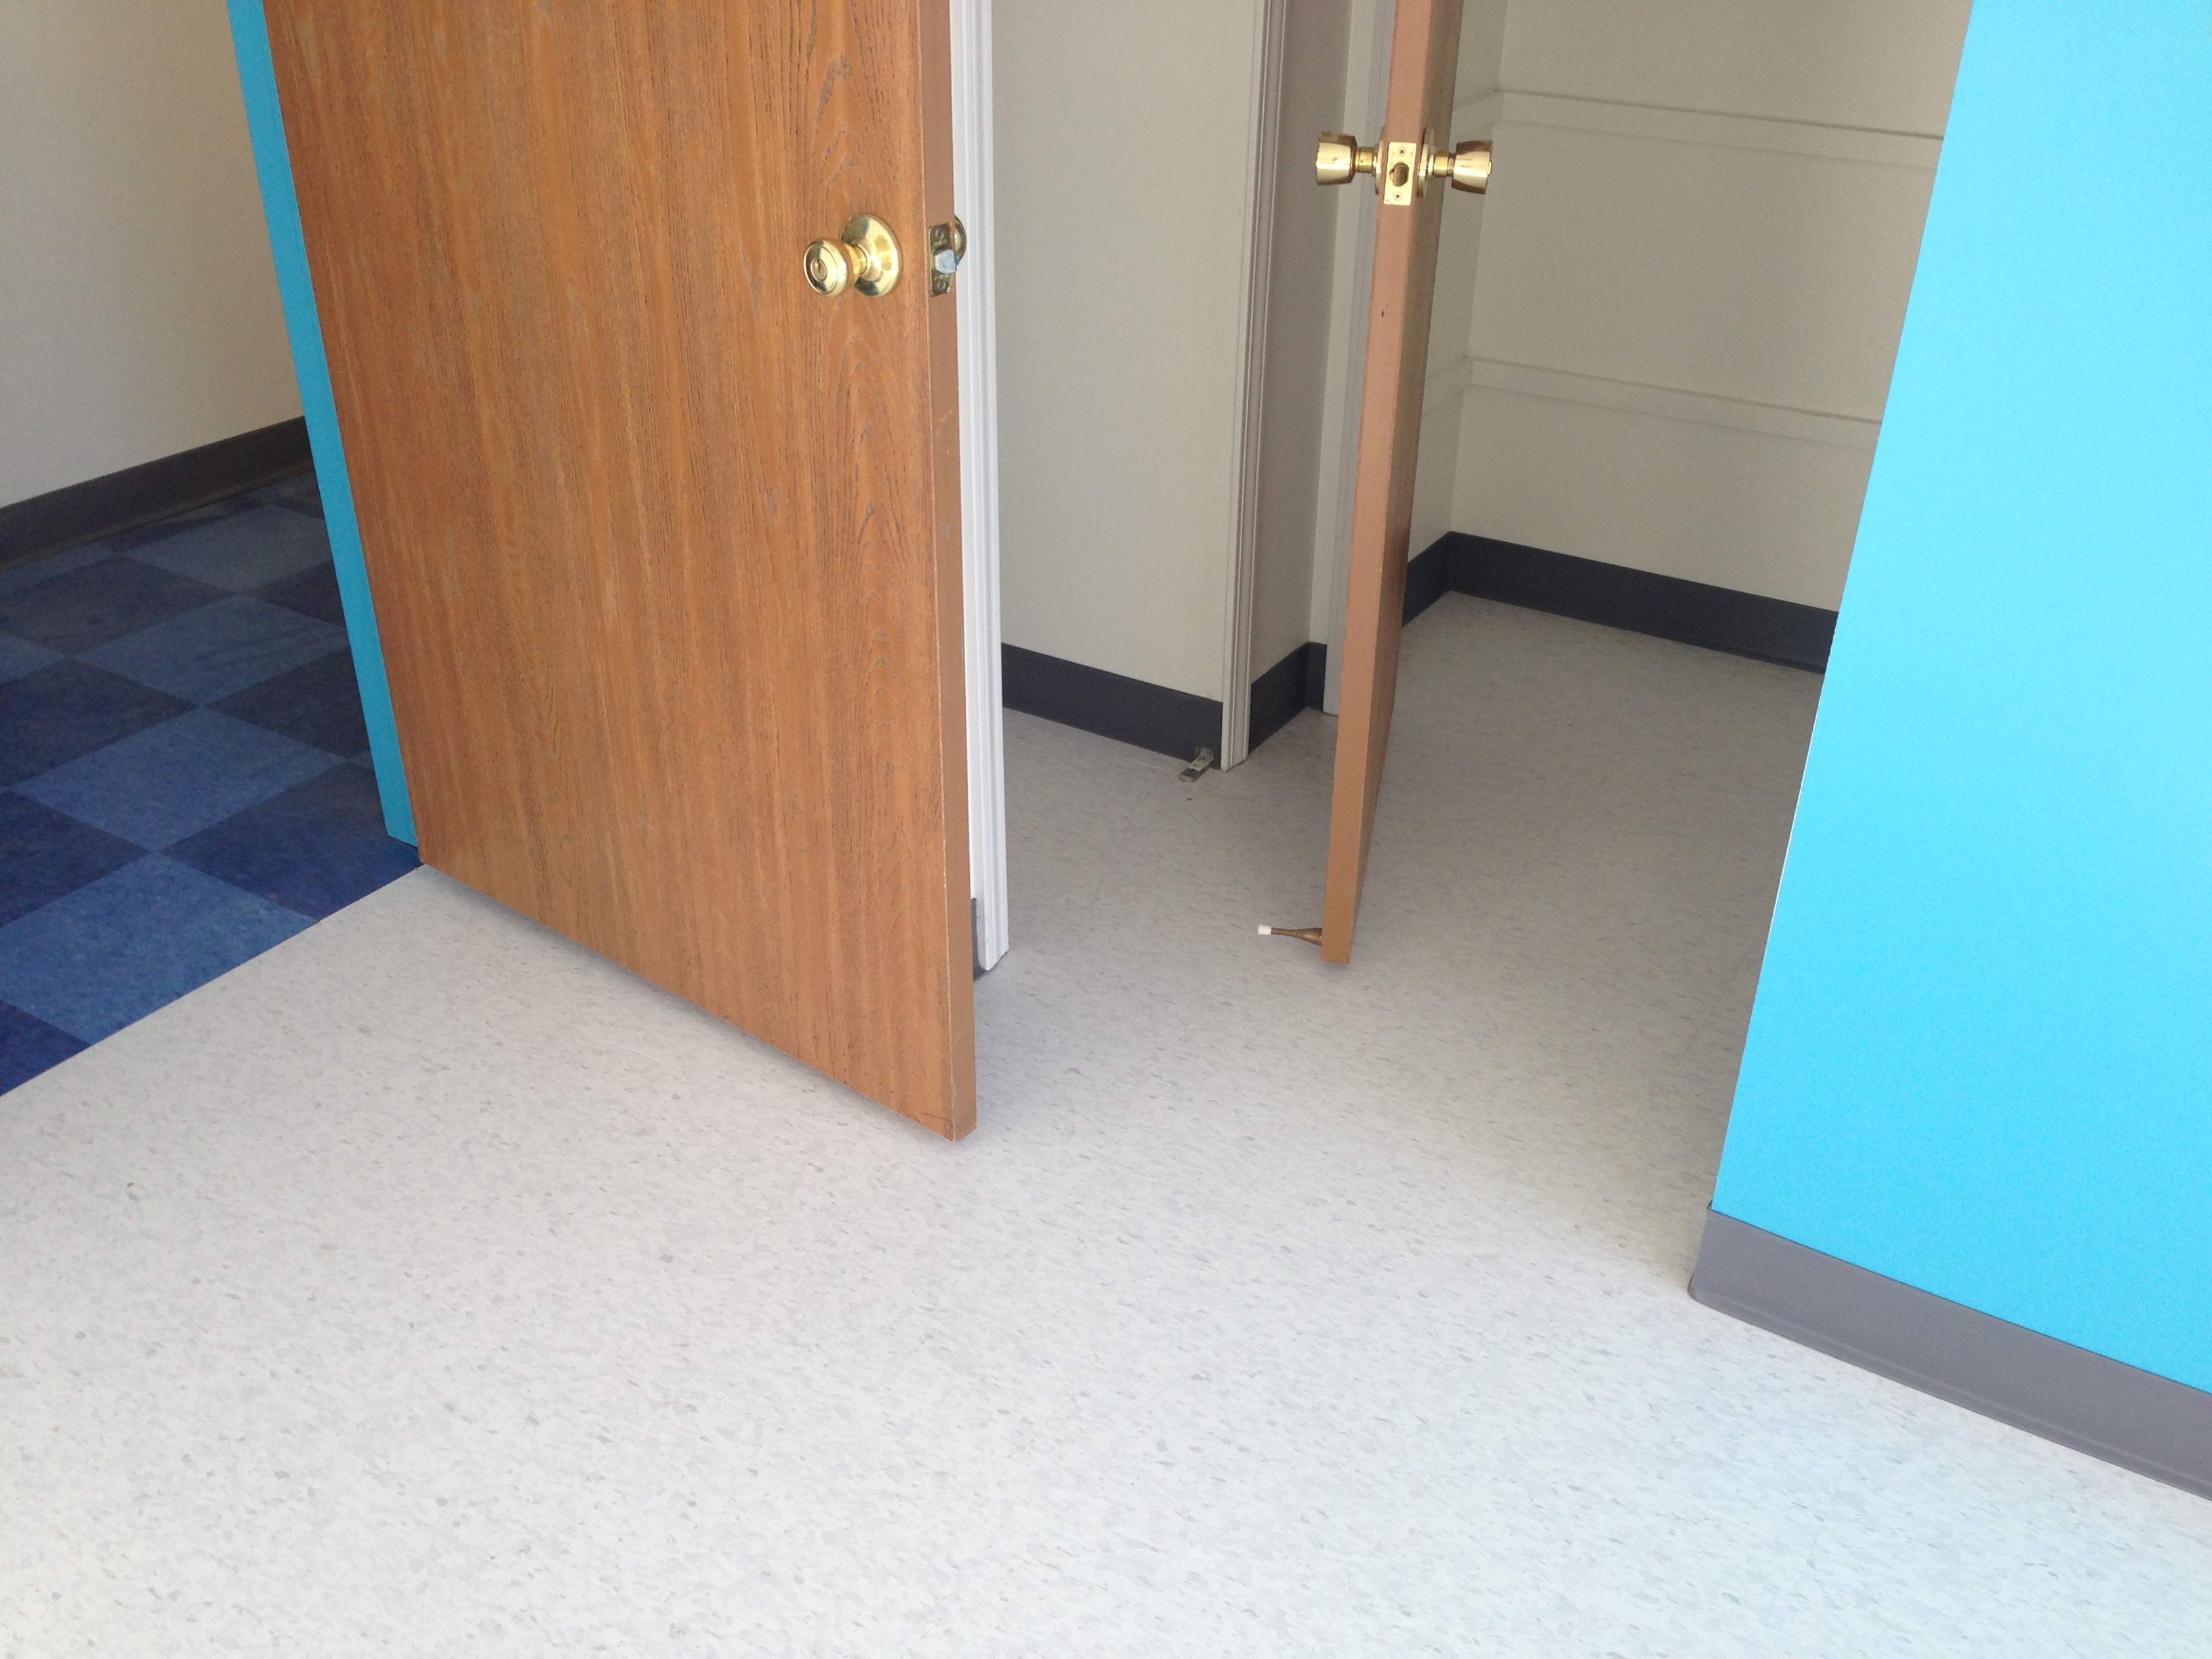 vct flooring: five things to know about vinyl composite tile